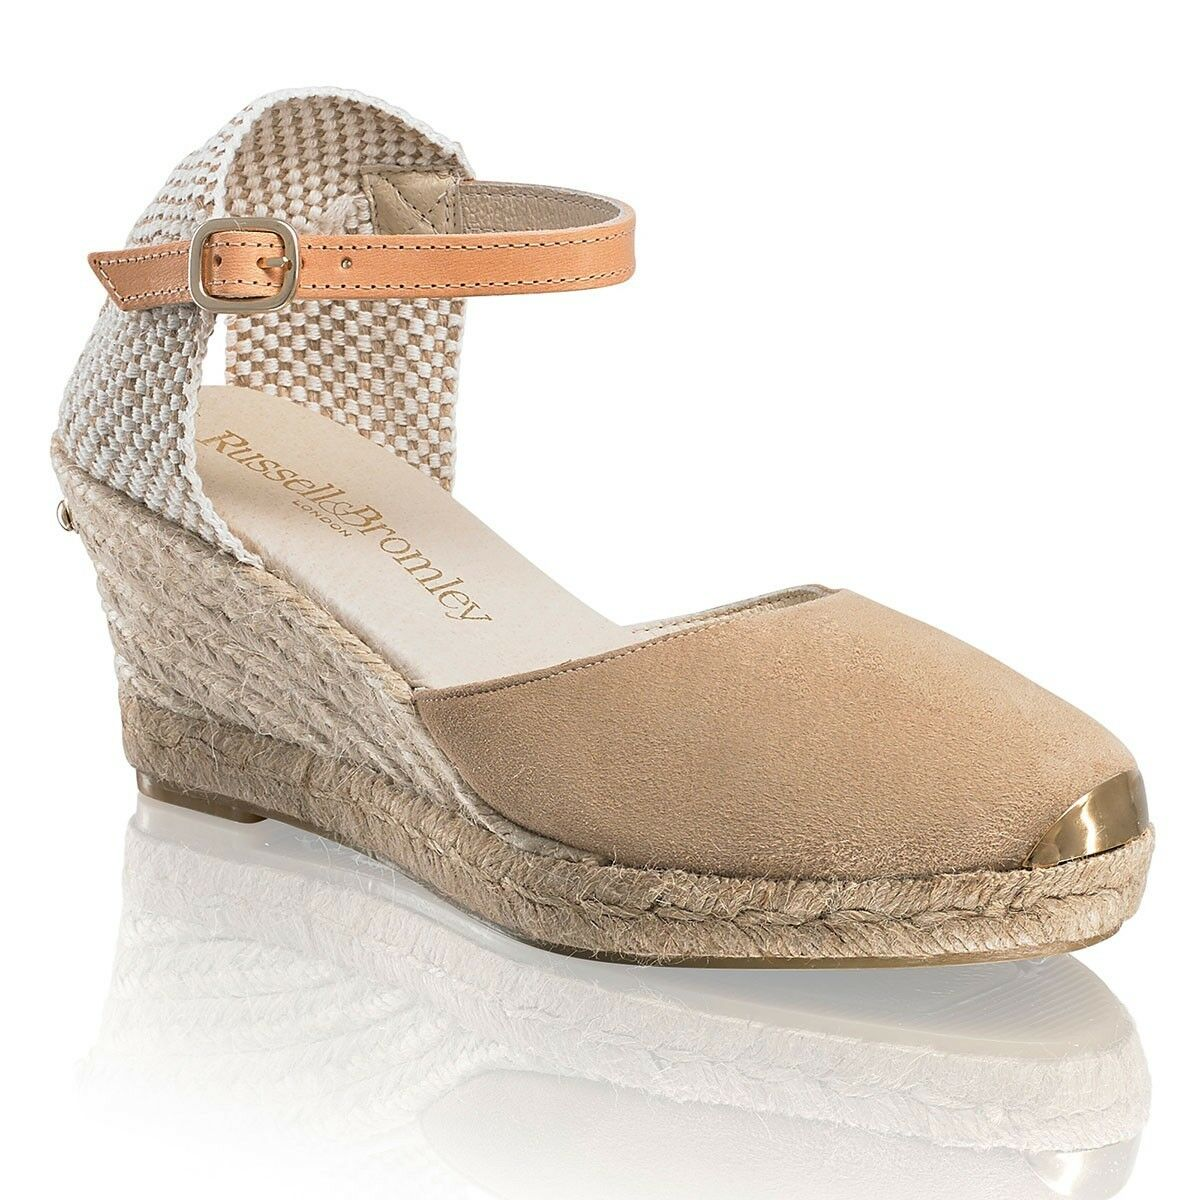 Russell Russell Russell and Bromley COCO NUT Ankle Strap Espadrille US 6 EU37 UK 4 BNWT Wedges a25fc5